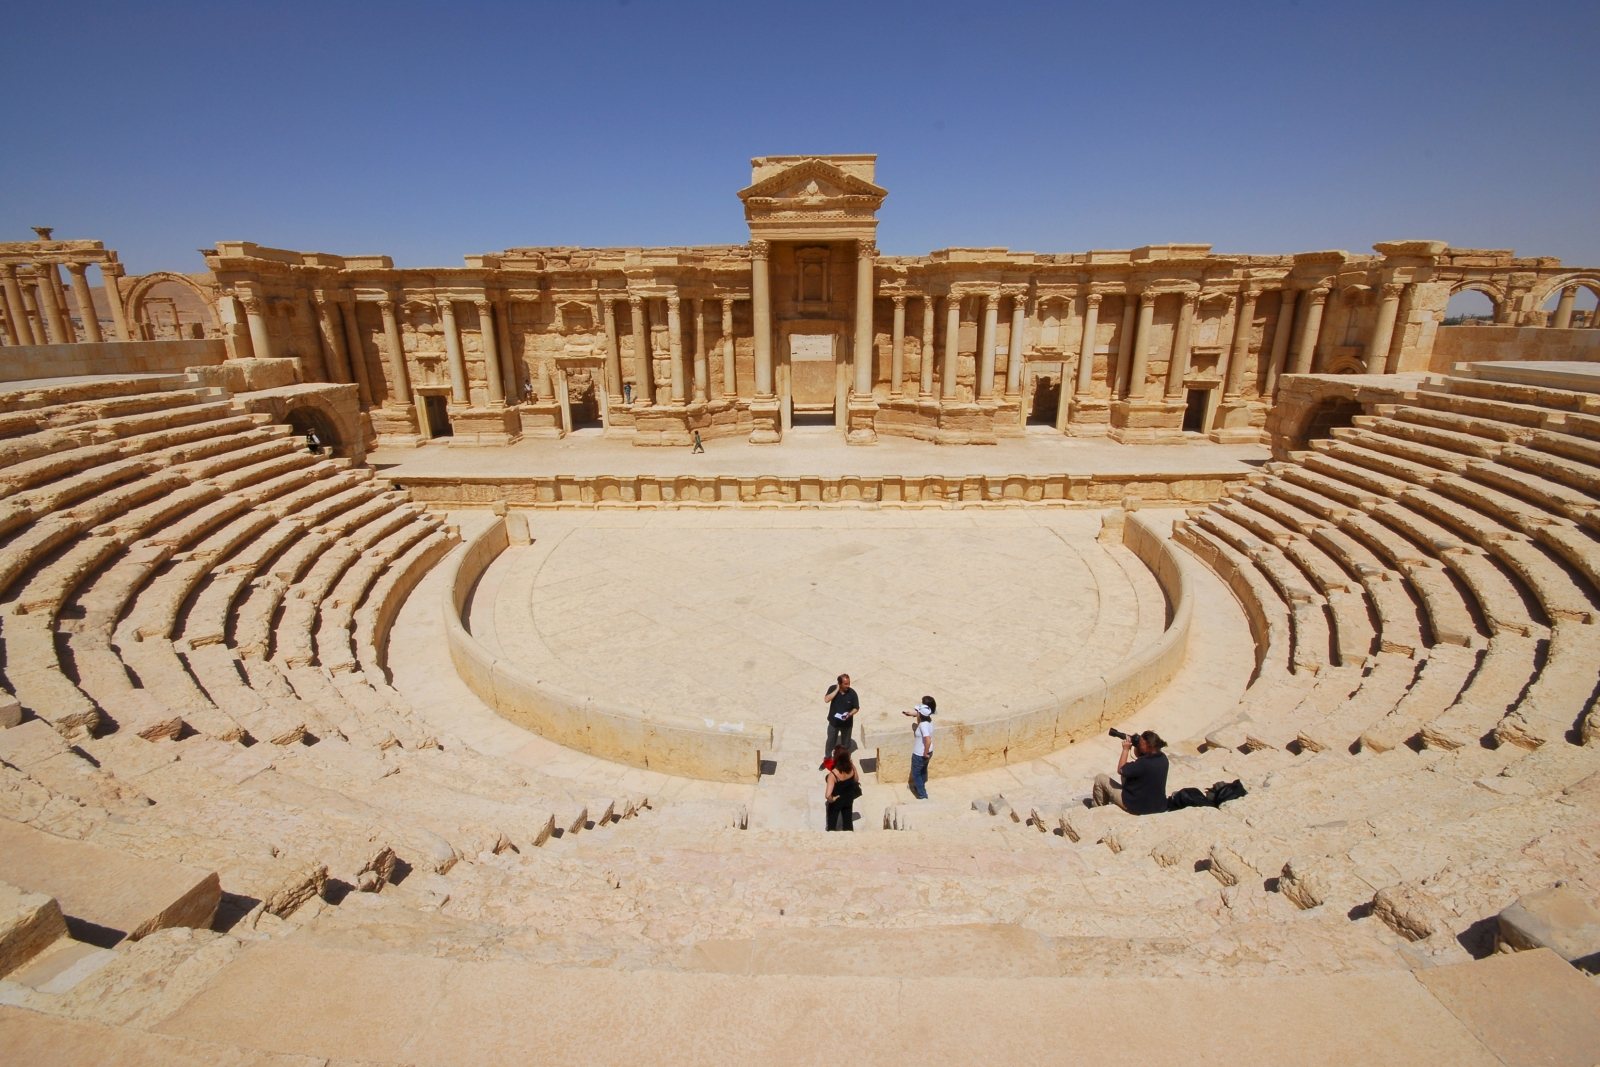 Palmyra: Syrian army poised to attack Isis-held city of ancient ruins